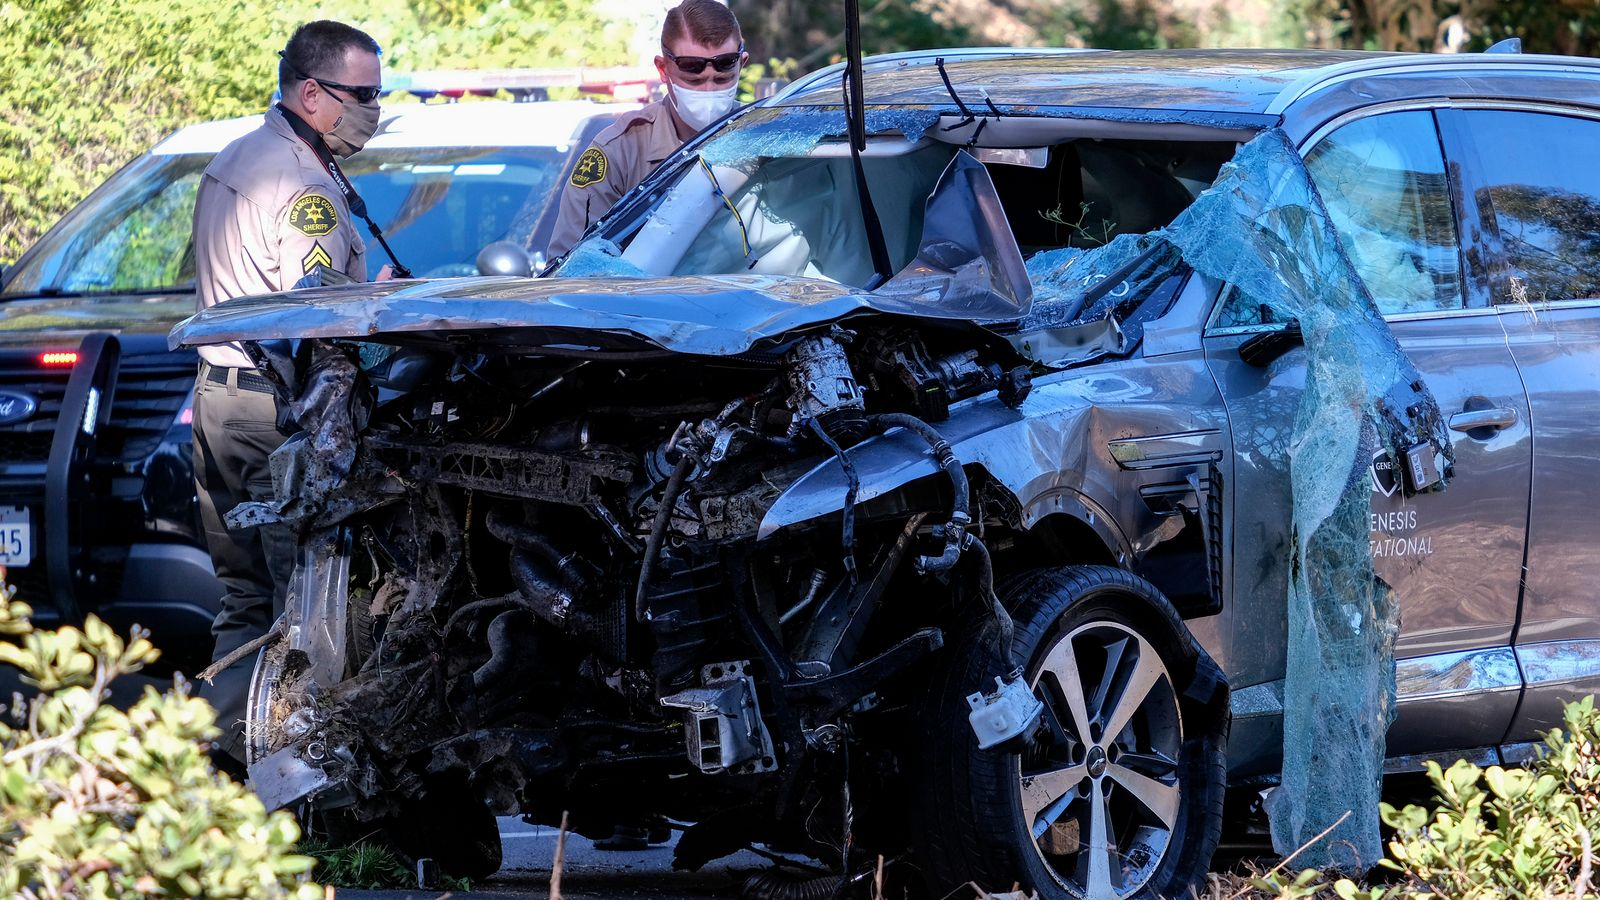 Tiger Woods: LA sheriff says automobile crash 'purely an accident' and golfer 'was not drunk'